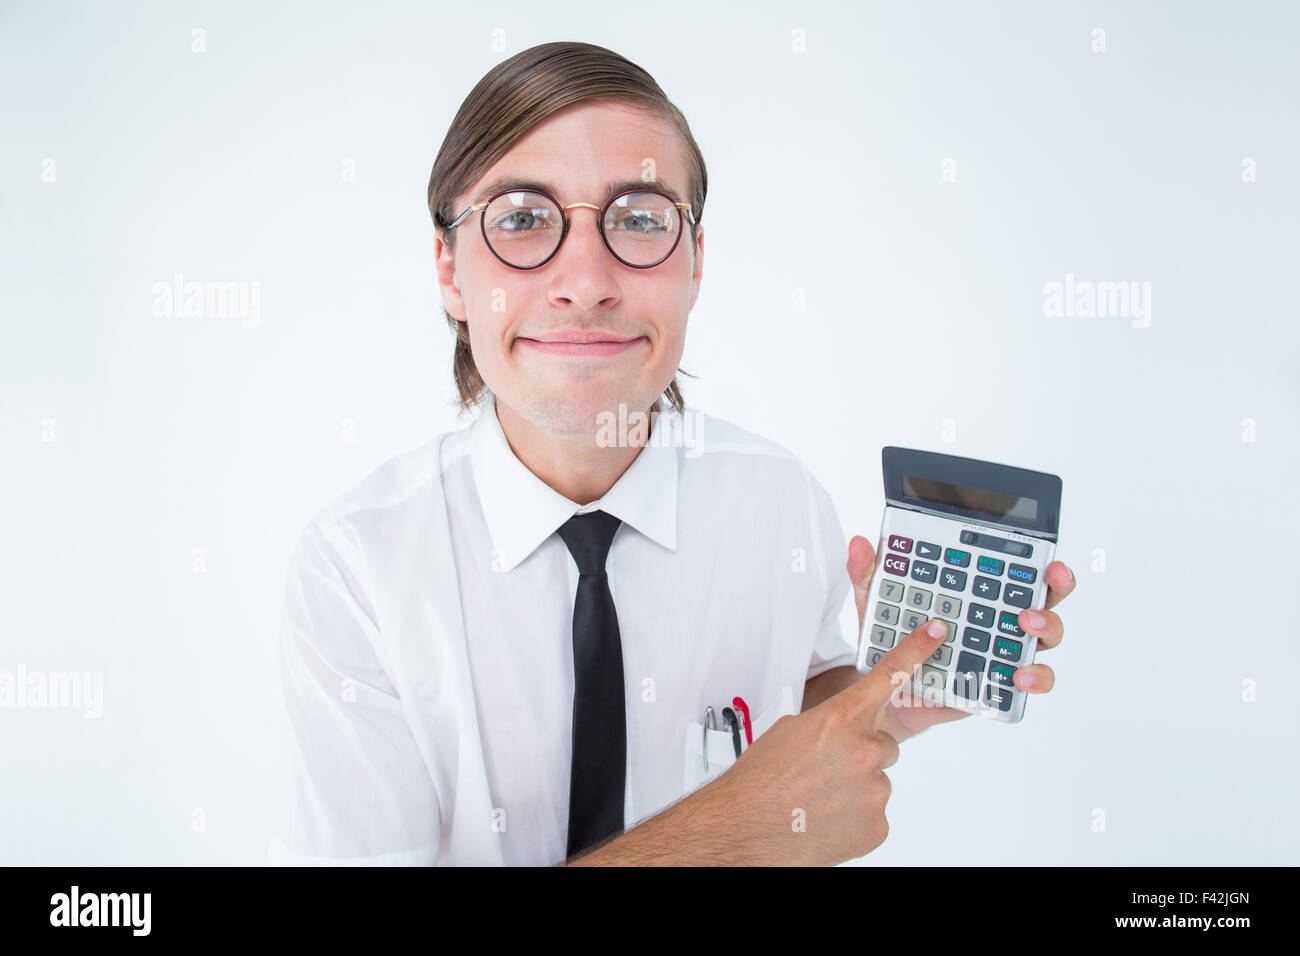 Geeky smiling businessman showing calculator - Stock Image